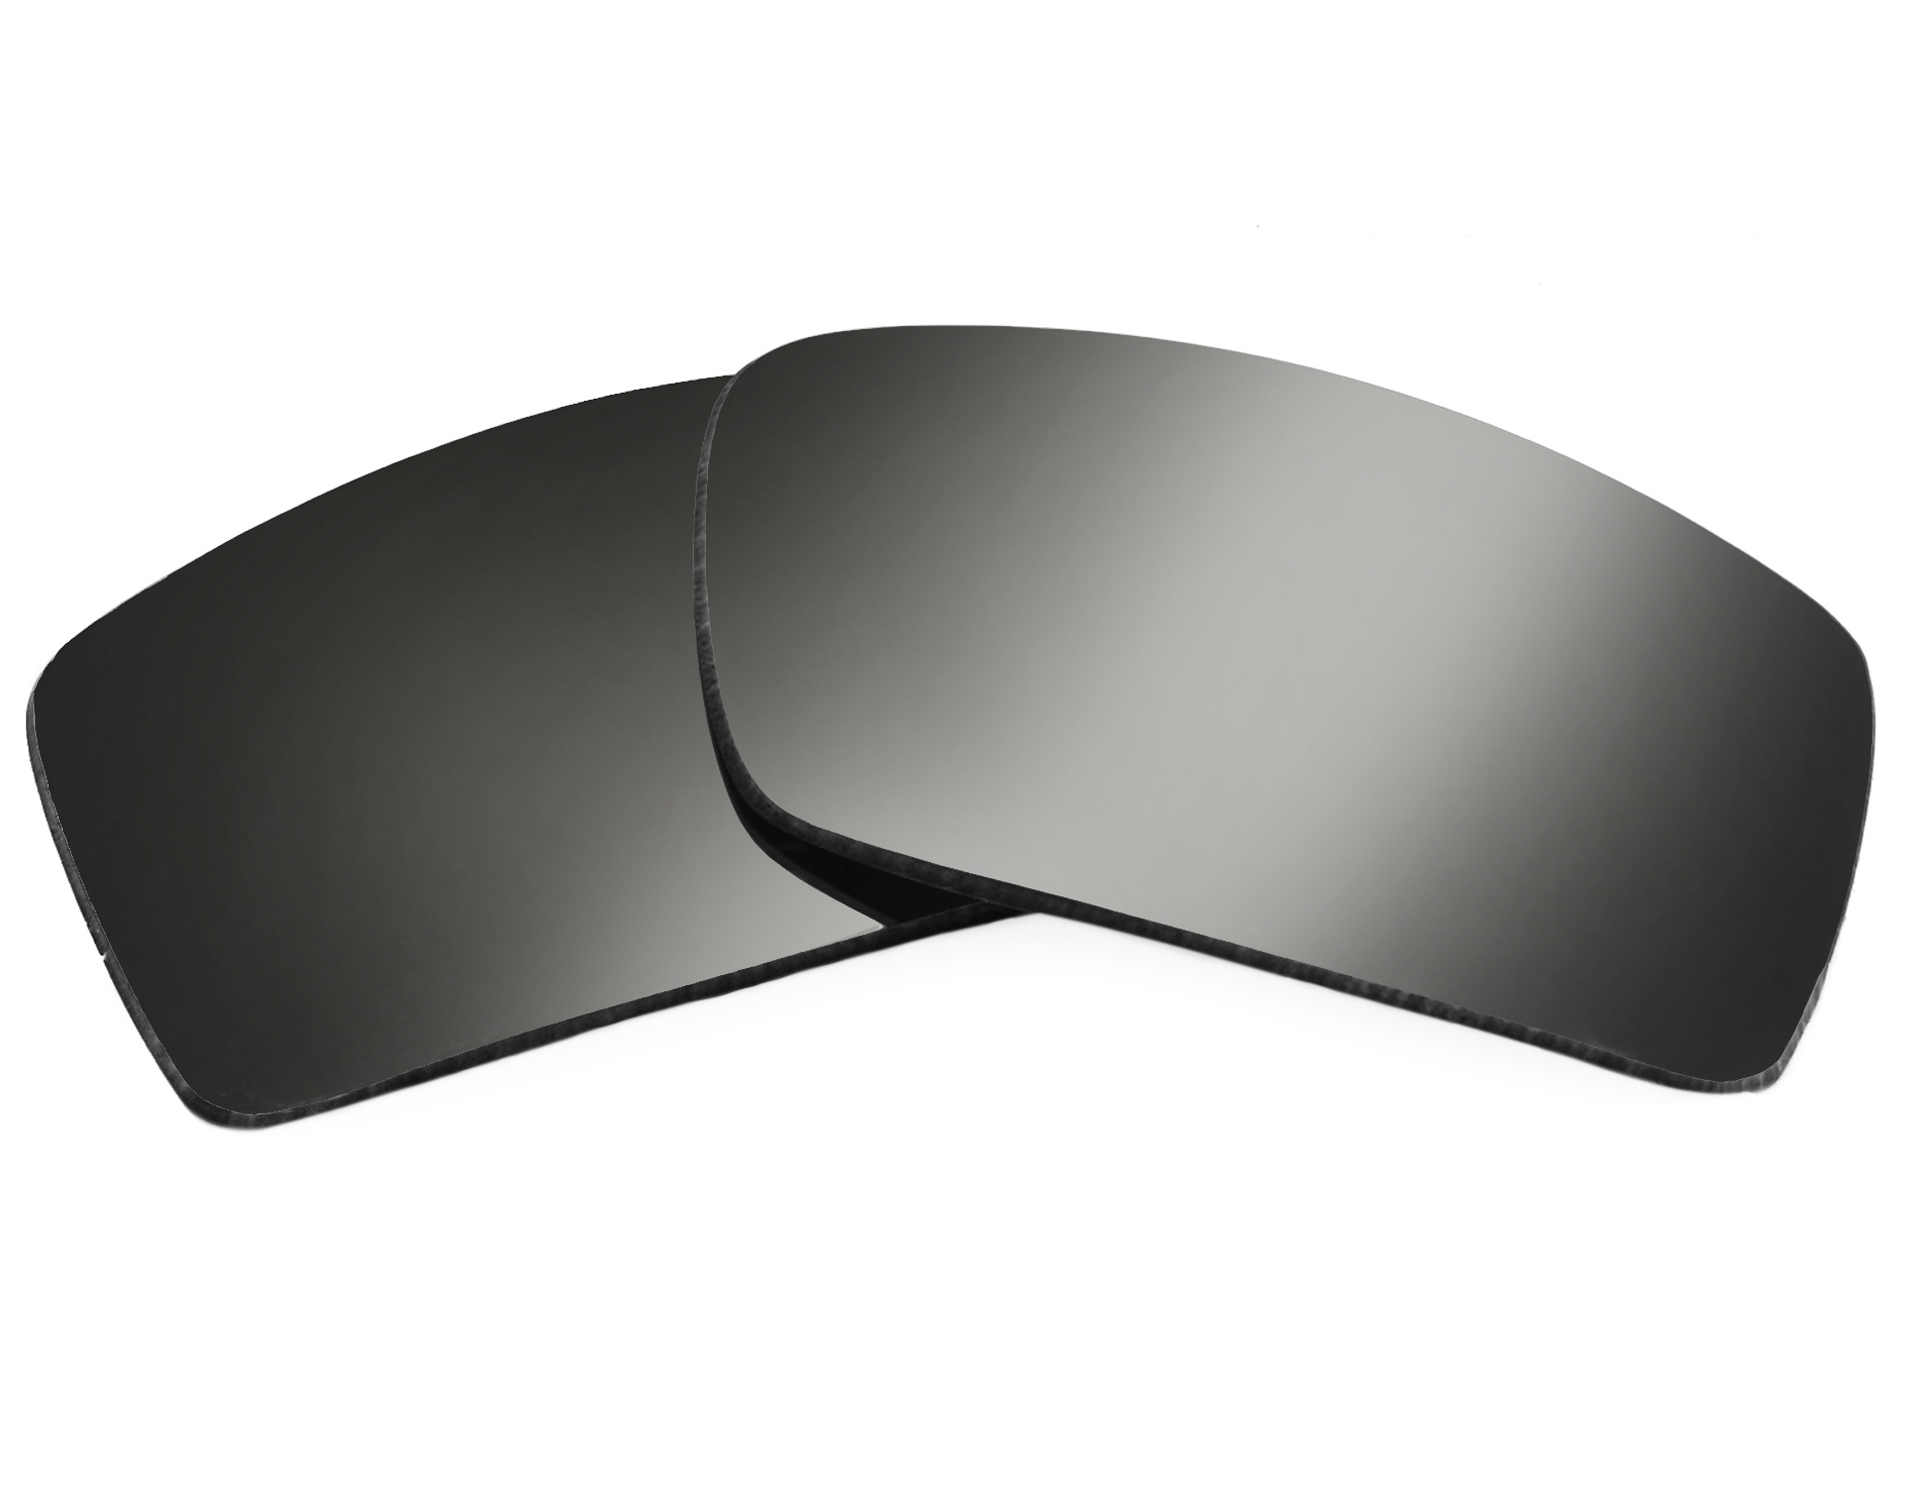 e02be5dba31 GASCAN Replacement Lenses Polarized Black Iridium by SEEK fits OAKLEY  Sunglasses